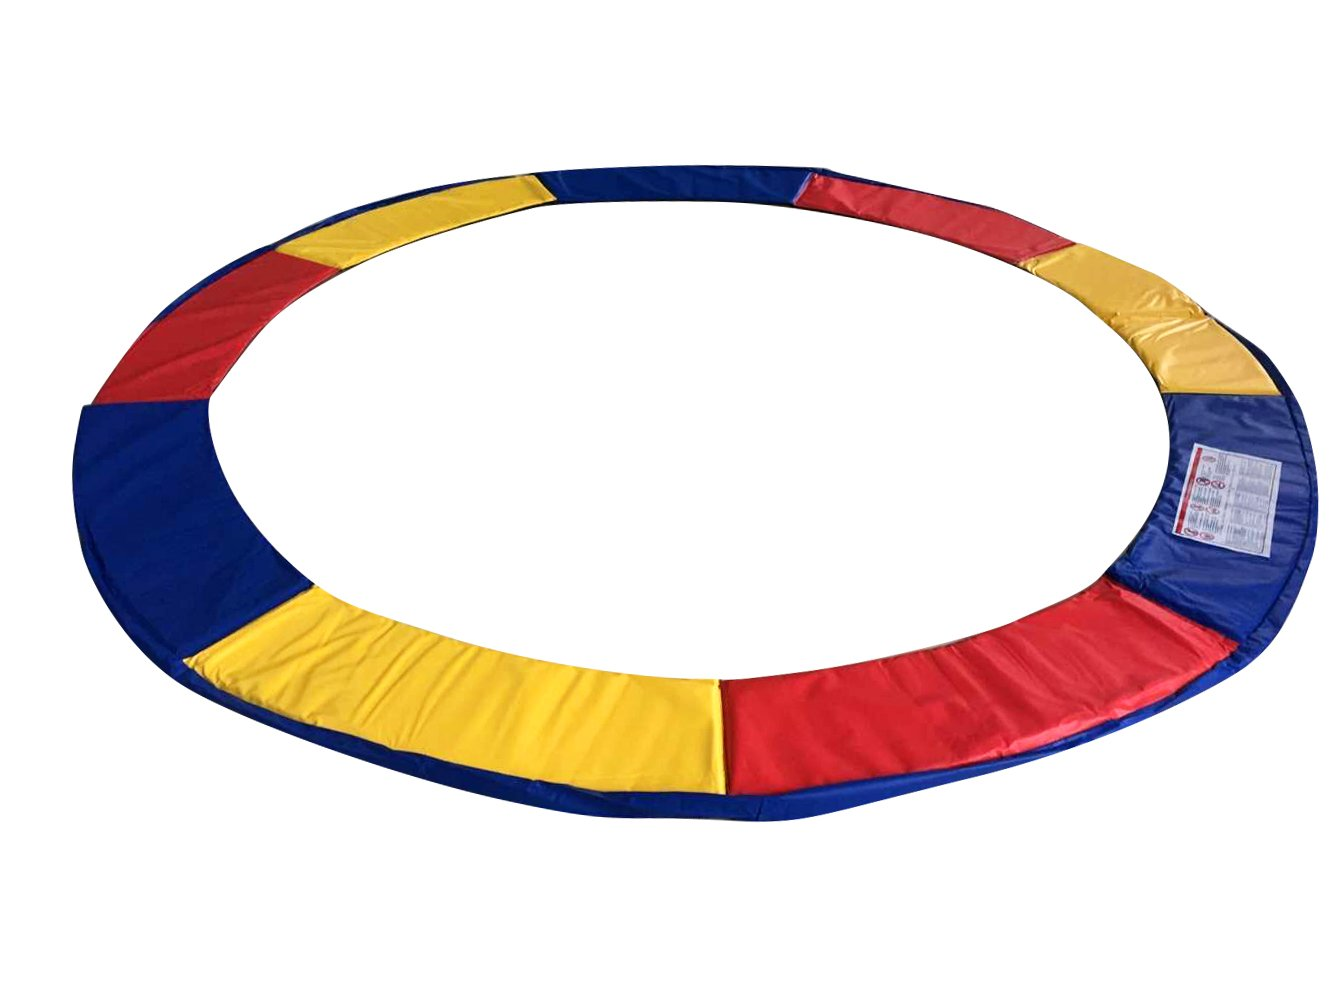 Exacme Trampoline Replacement Safety Pad Frame Spring 10-16FT Colors Round Cover (12 FT)